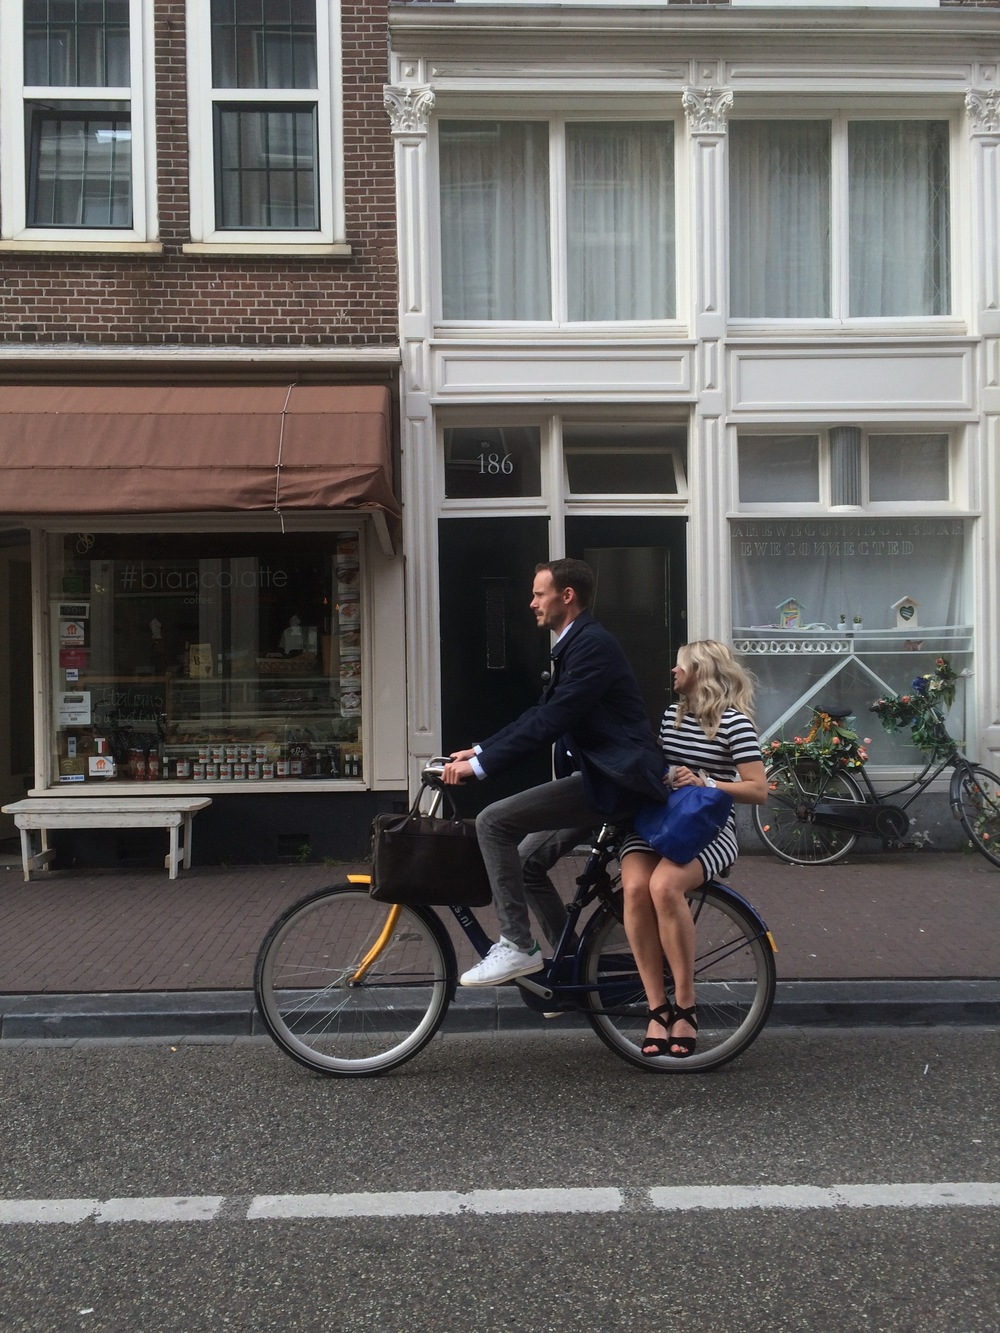 "A couple ""dinking"" on an OV fiets bike share bicycle.  These bike share bicycles are located at train stations to allow those who arrive by train to get to their destination."